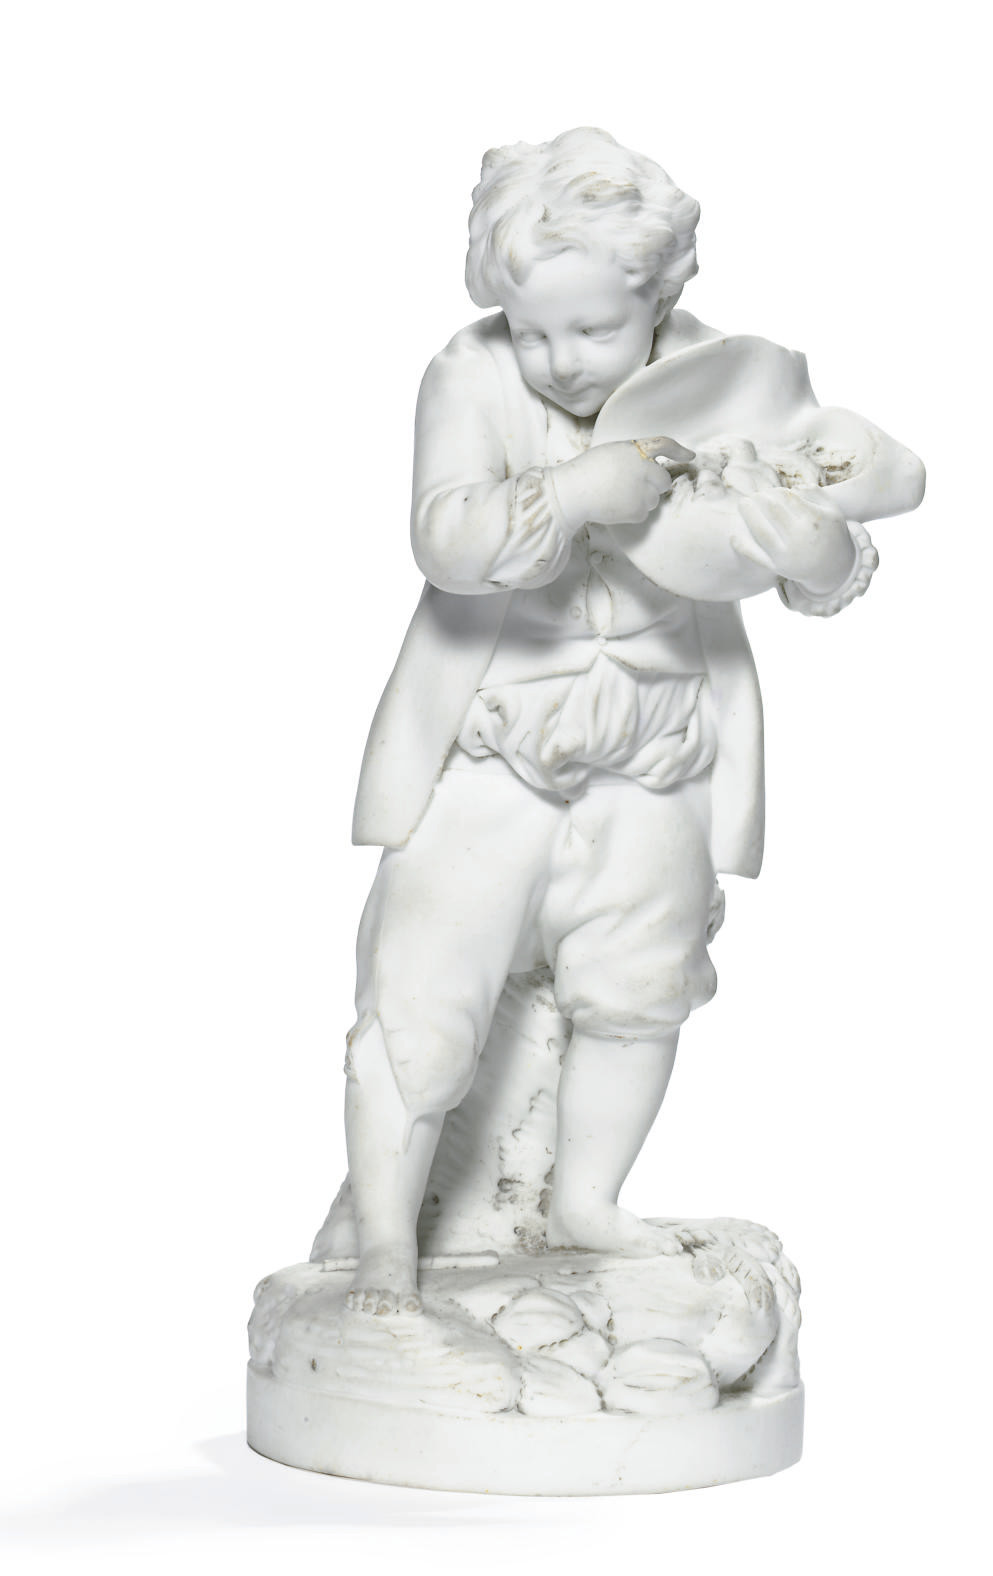 A NIDERVILLER BISCUIT FIGURE OF A PEASANT BOY WITH A BIRD'S NEST IN HIS HAT